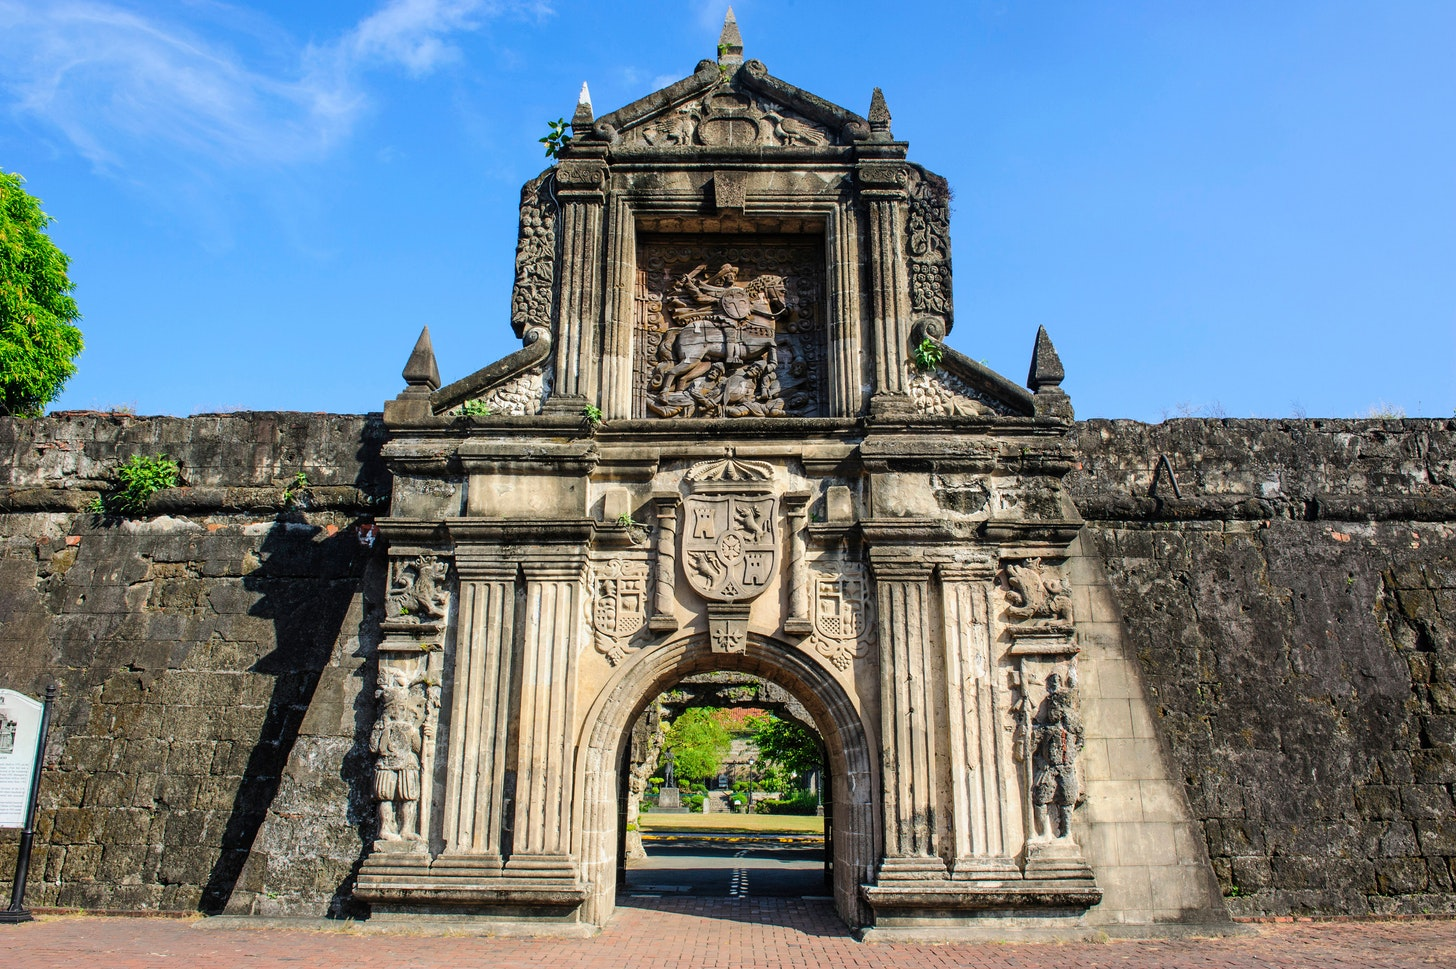 Iconic entrances of walled city Intramuros in Manila